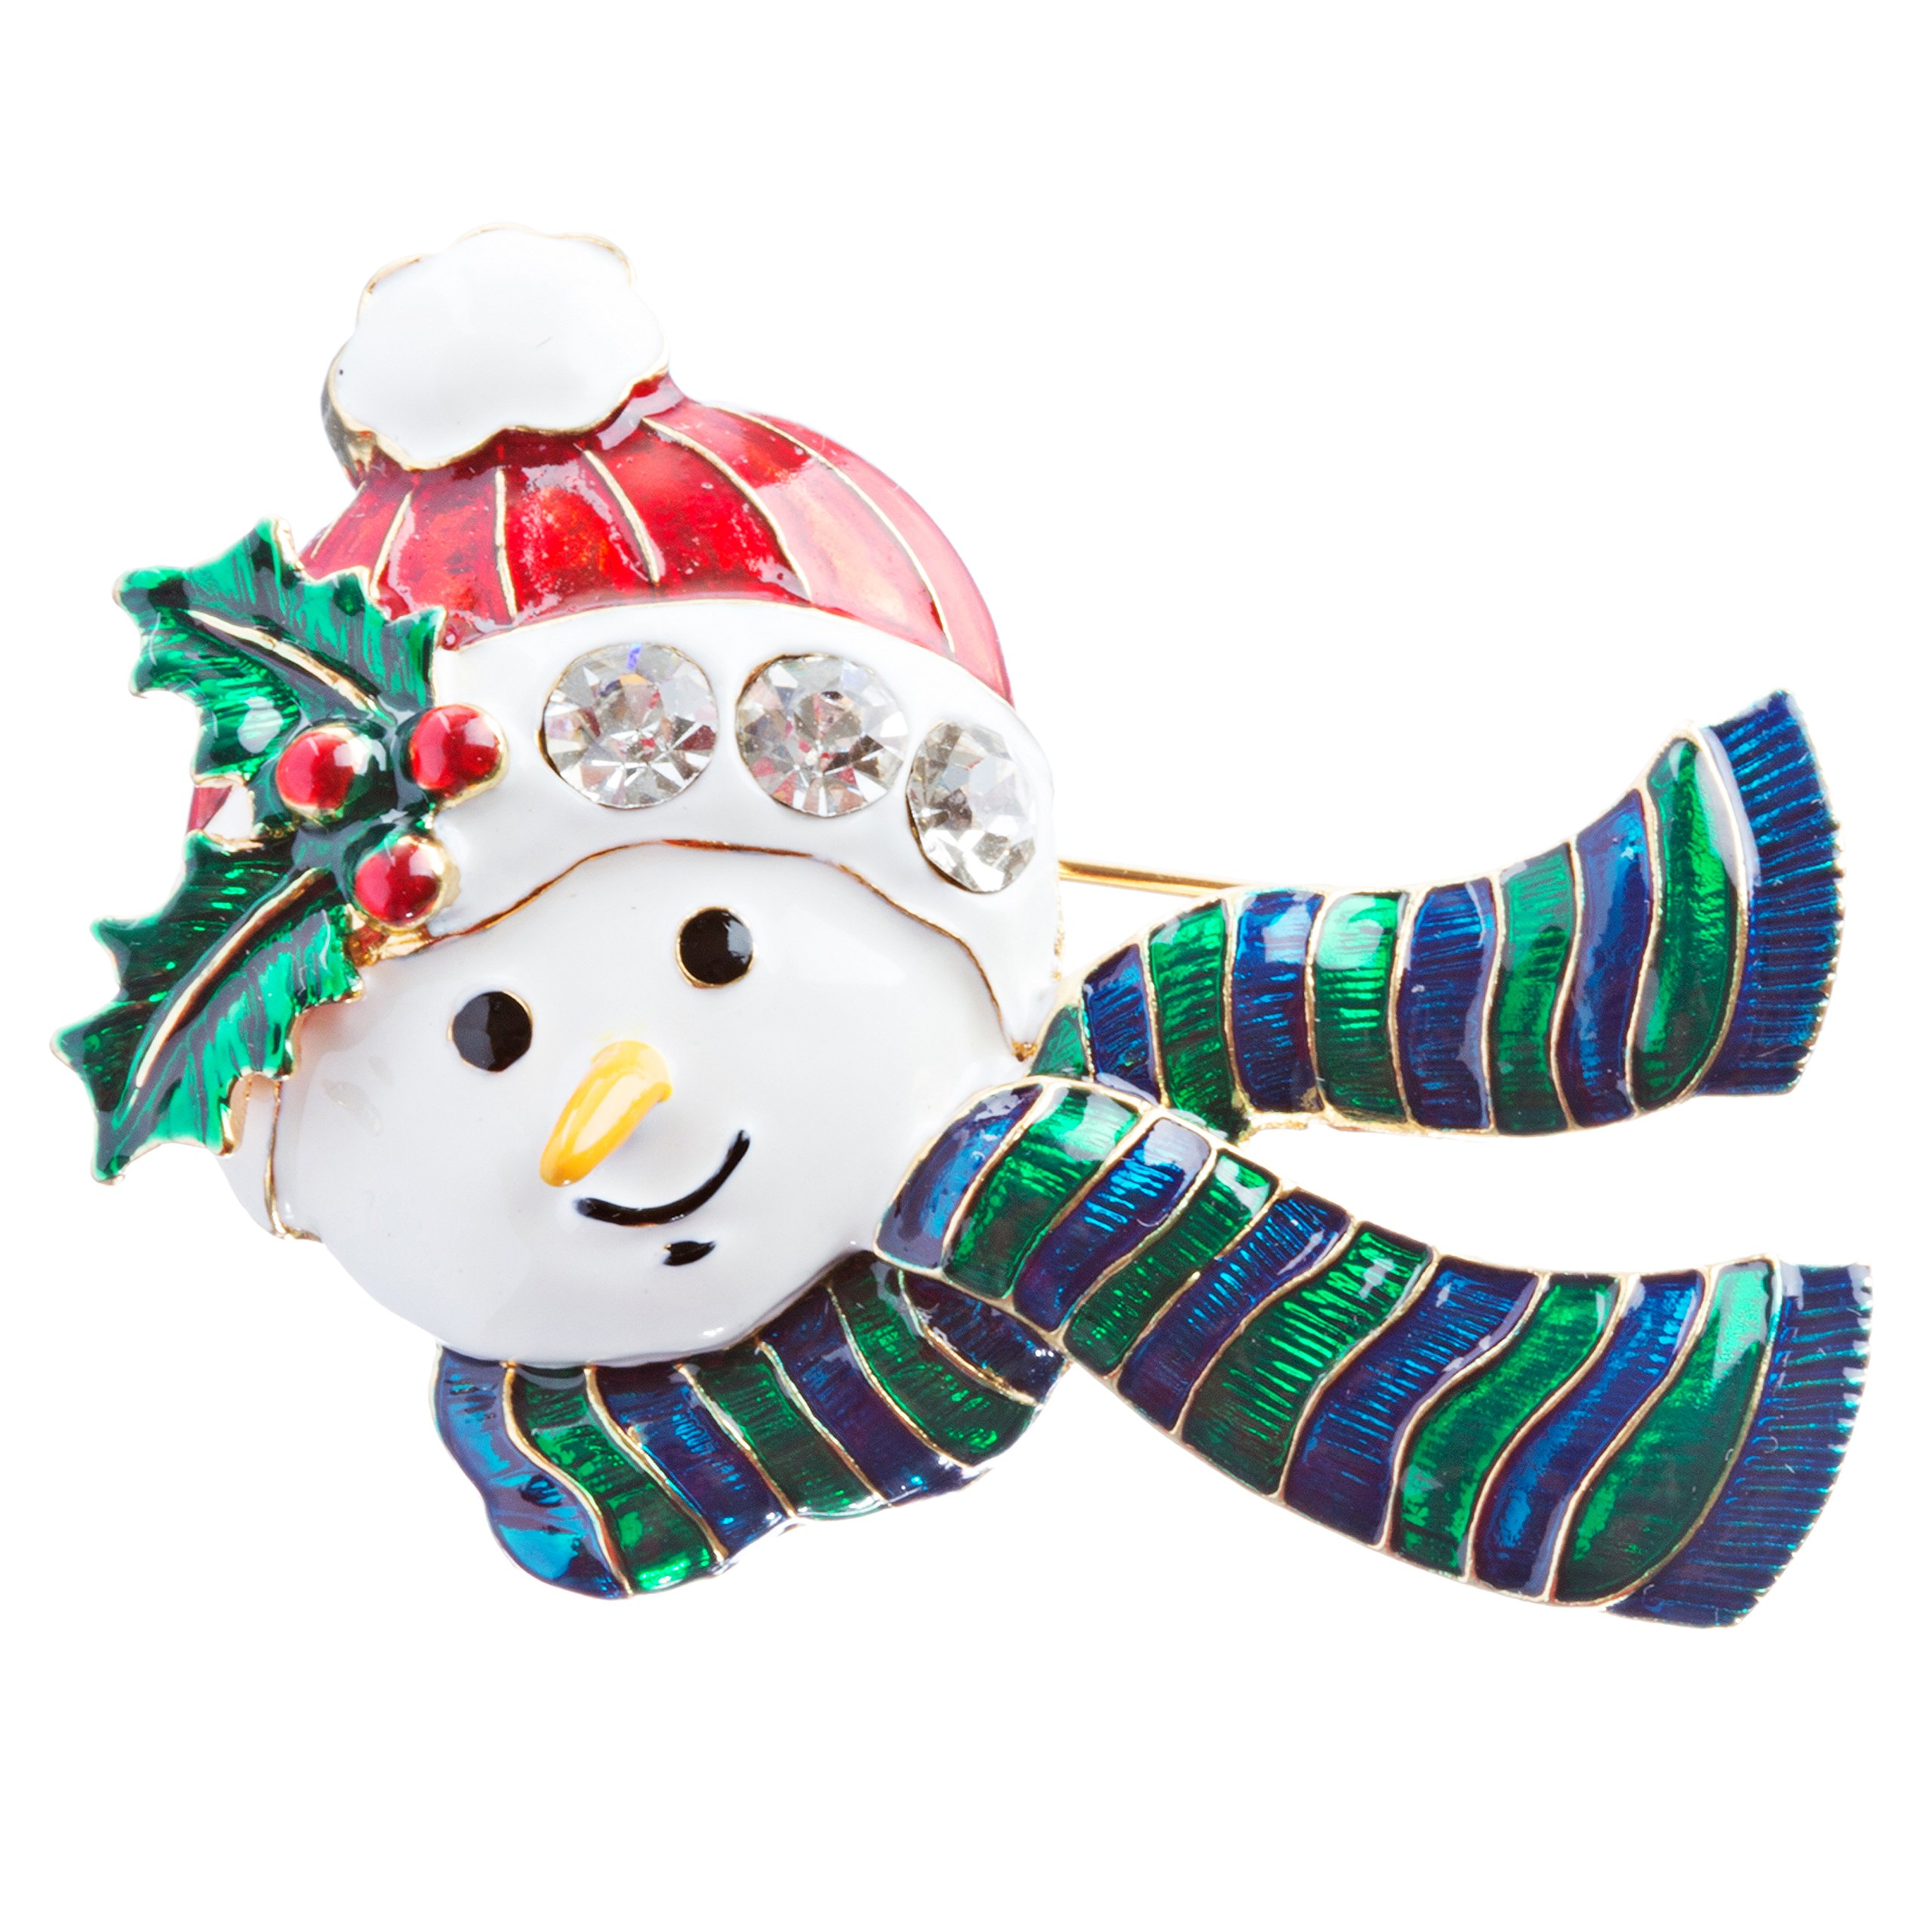 ACCESSORIESFOREVER Christmas Jewelry Crystal Rhinestone Holiday Happy Snowman Brooch Pin BH137